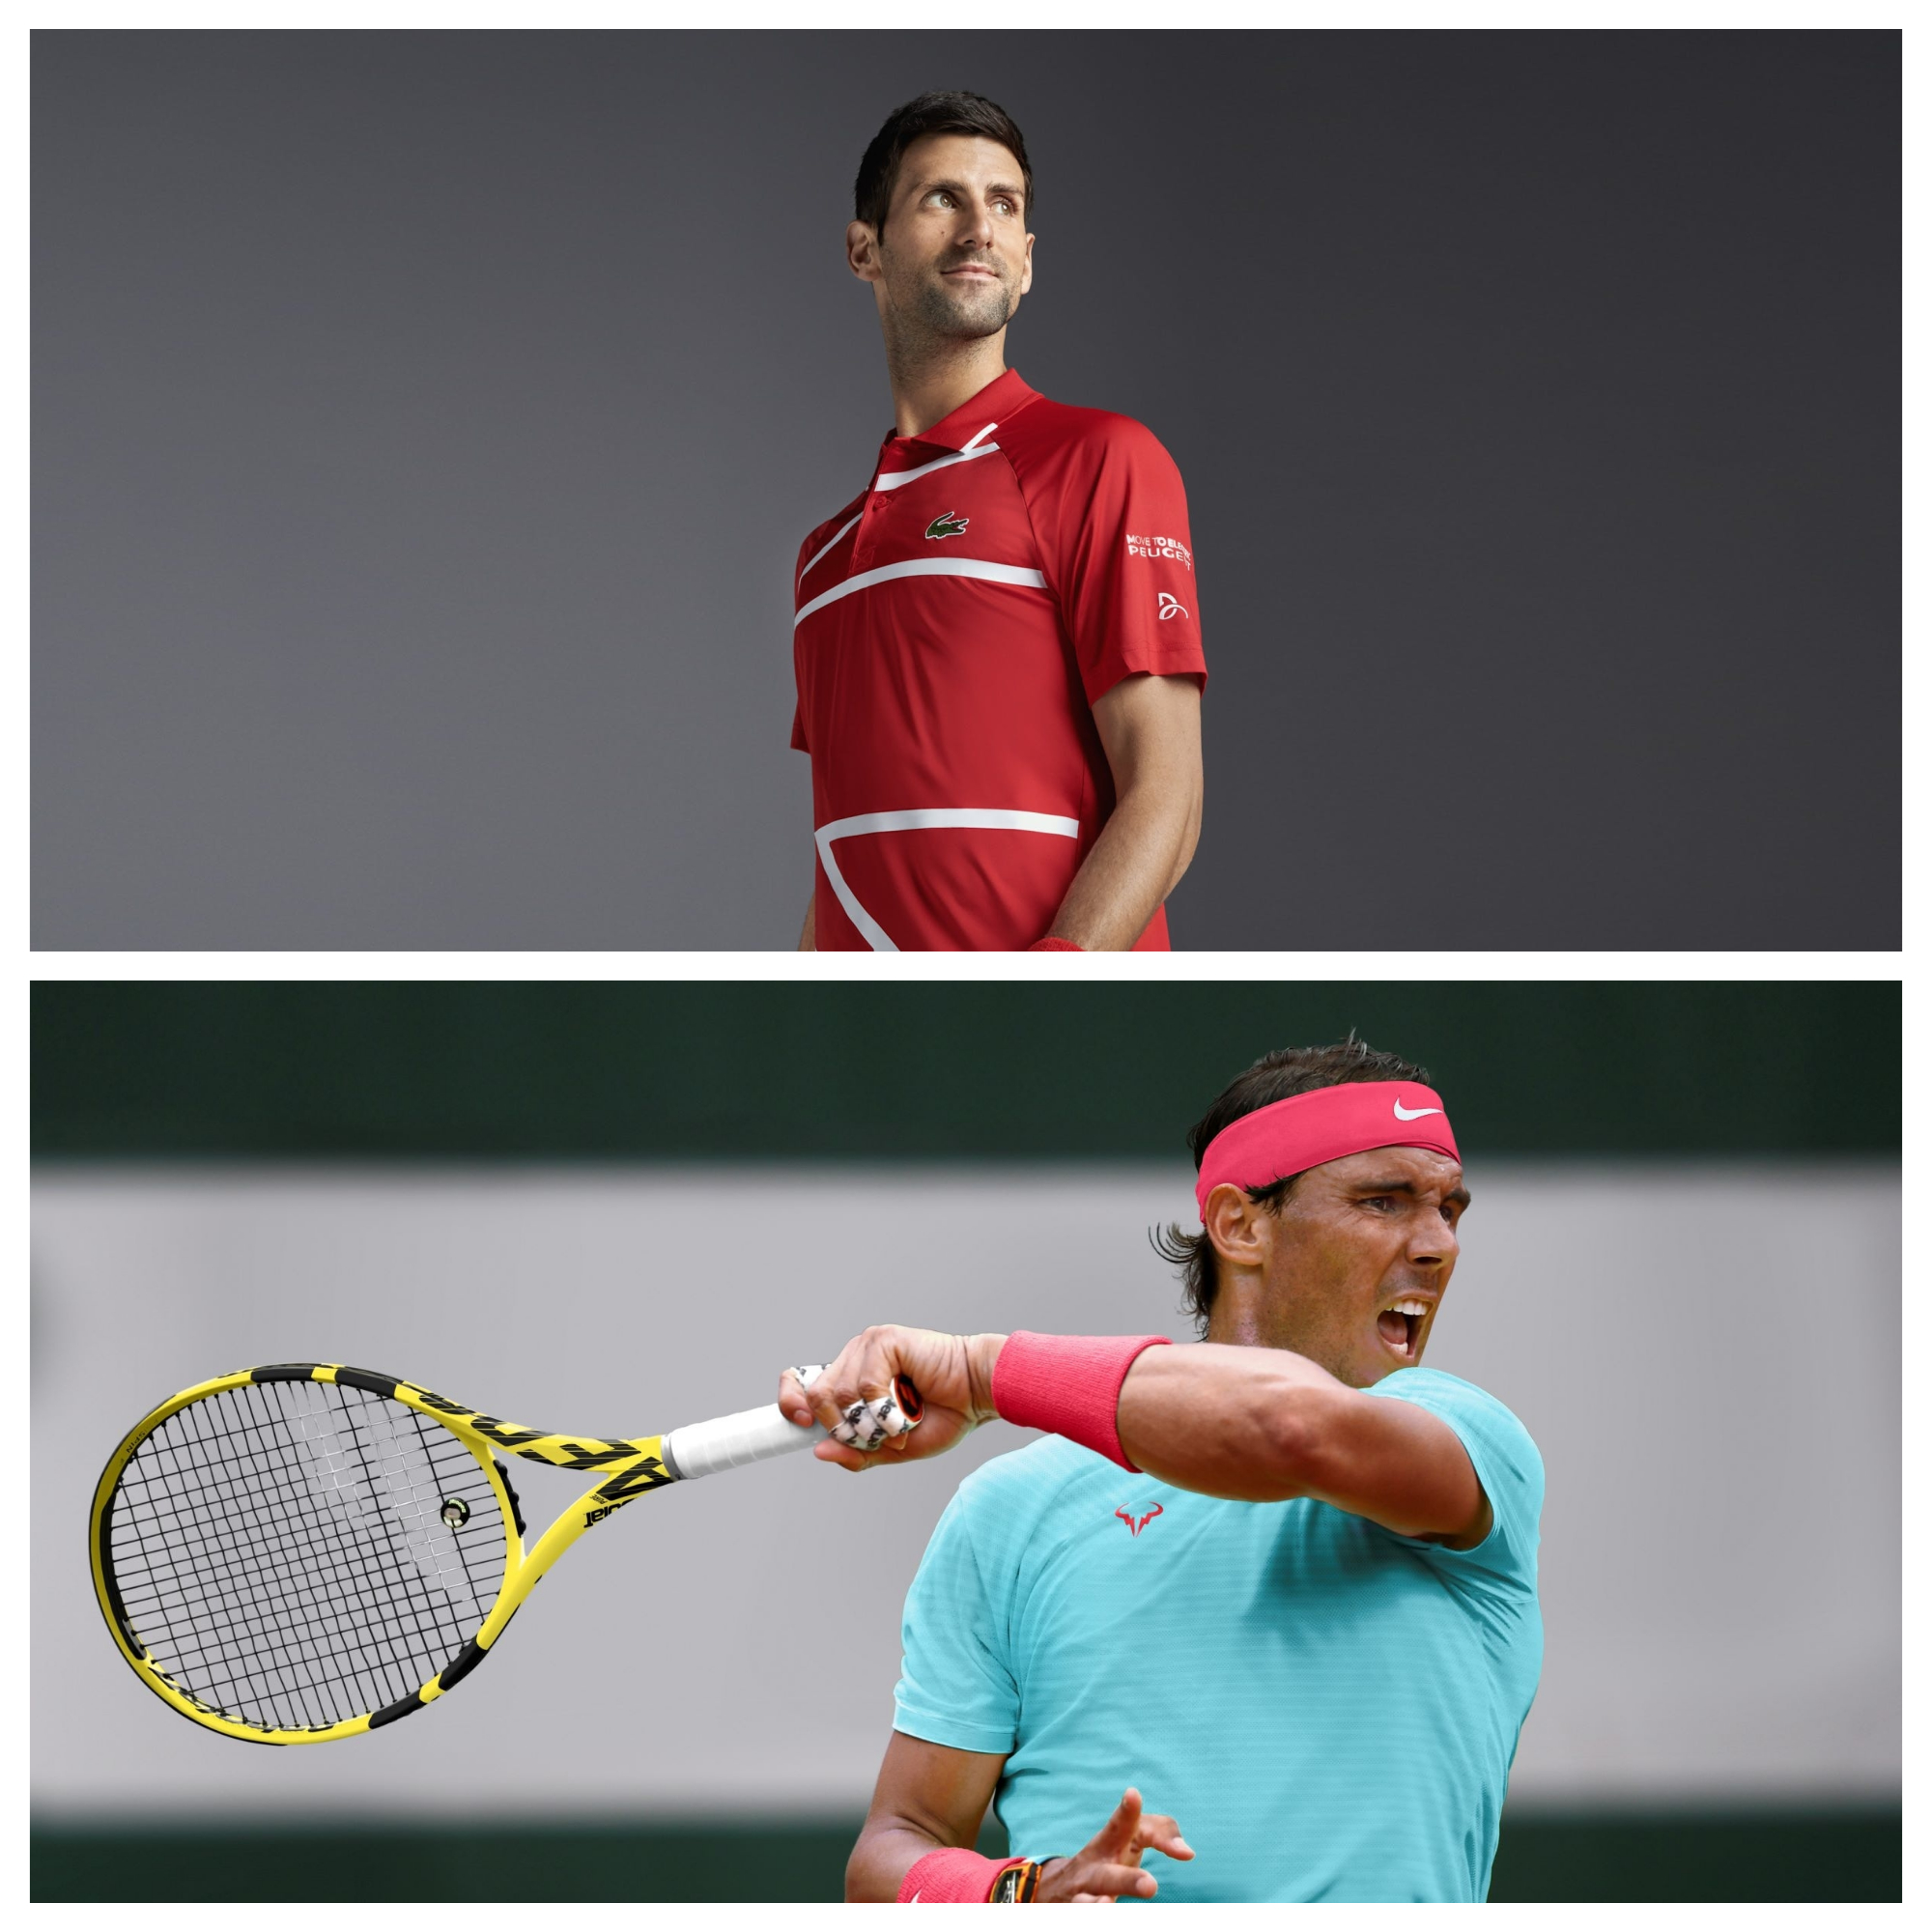 Who S To Wear What At The 2020 French Open Rafa Nadal Roland Garros Barty